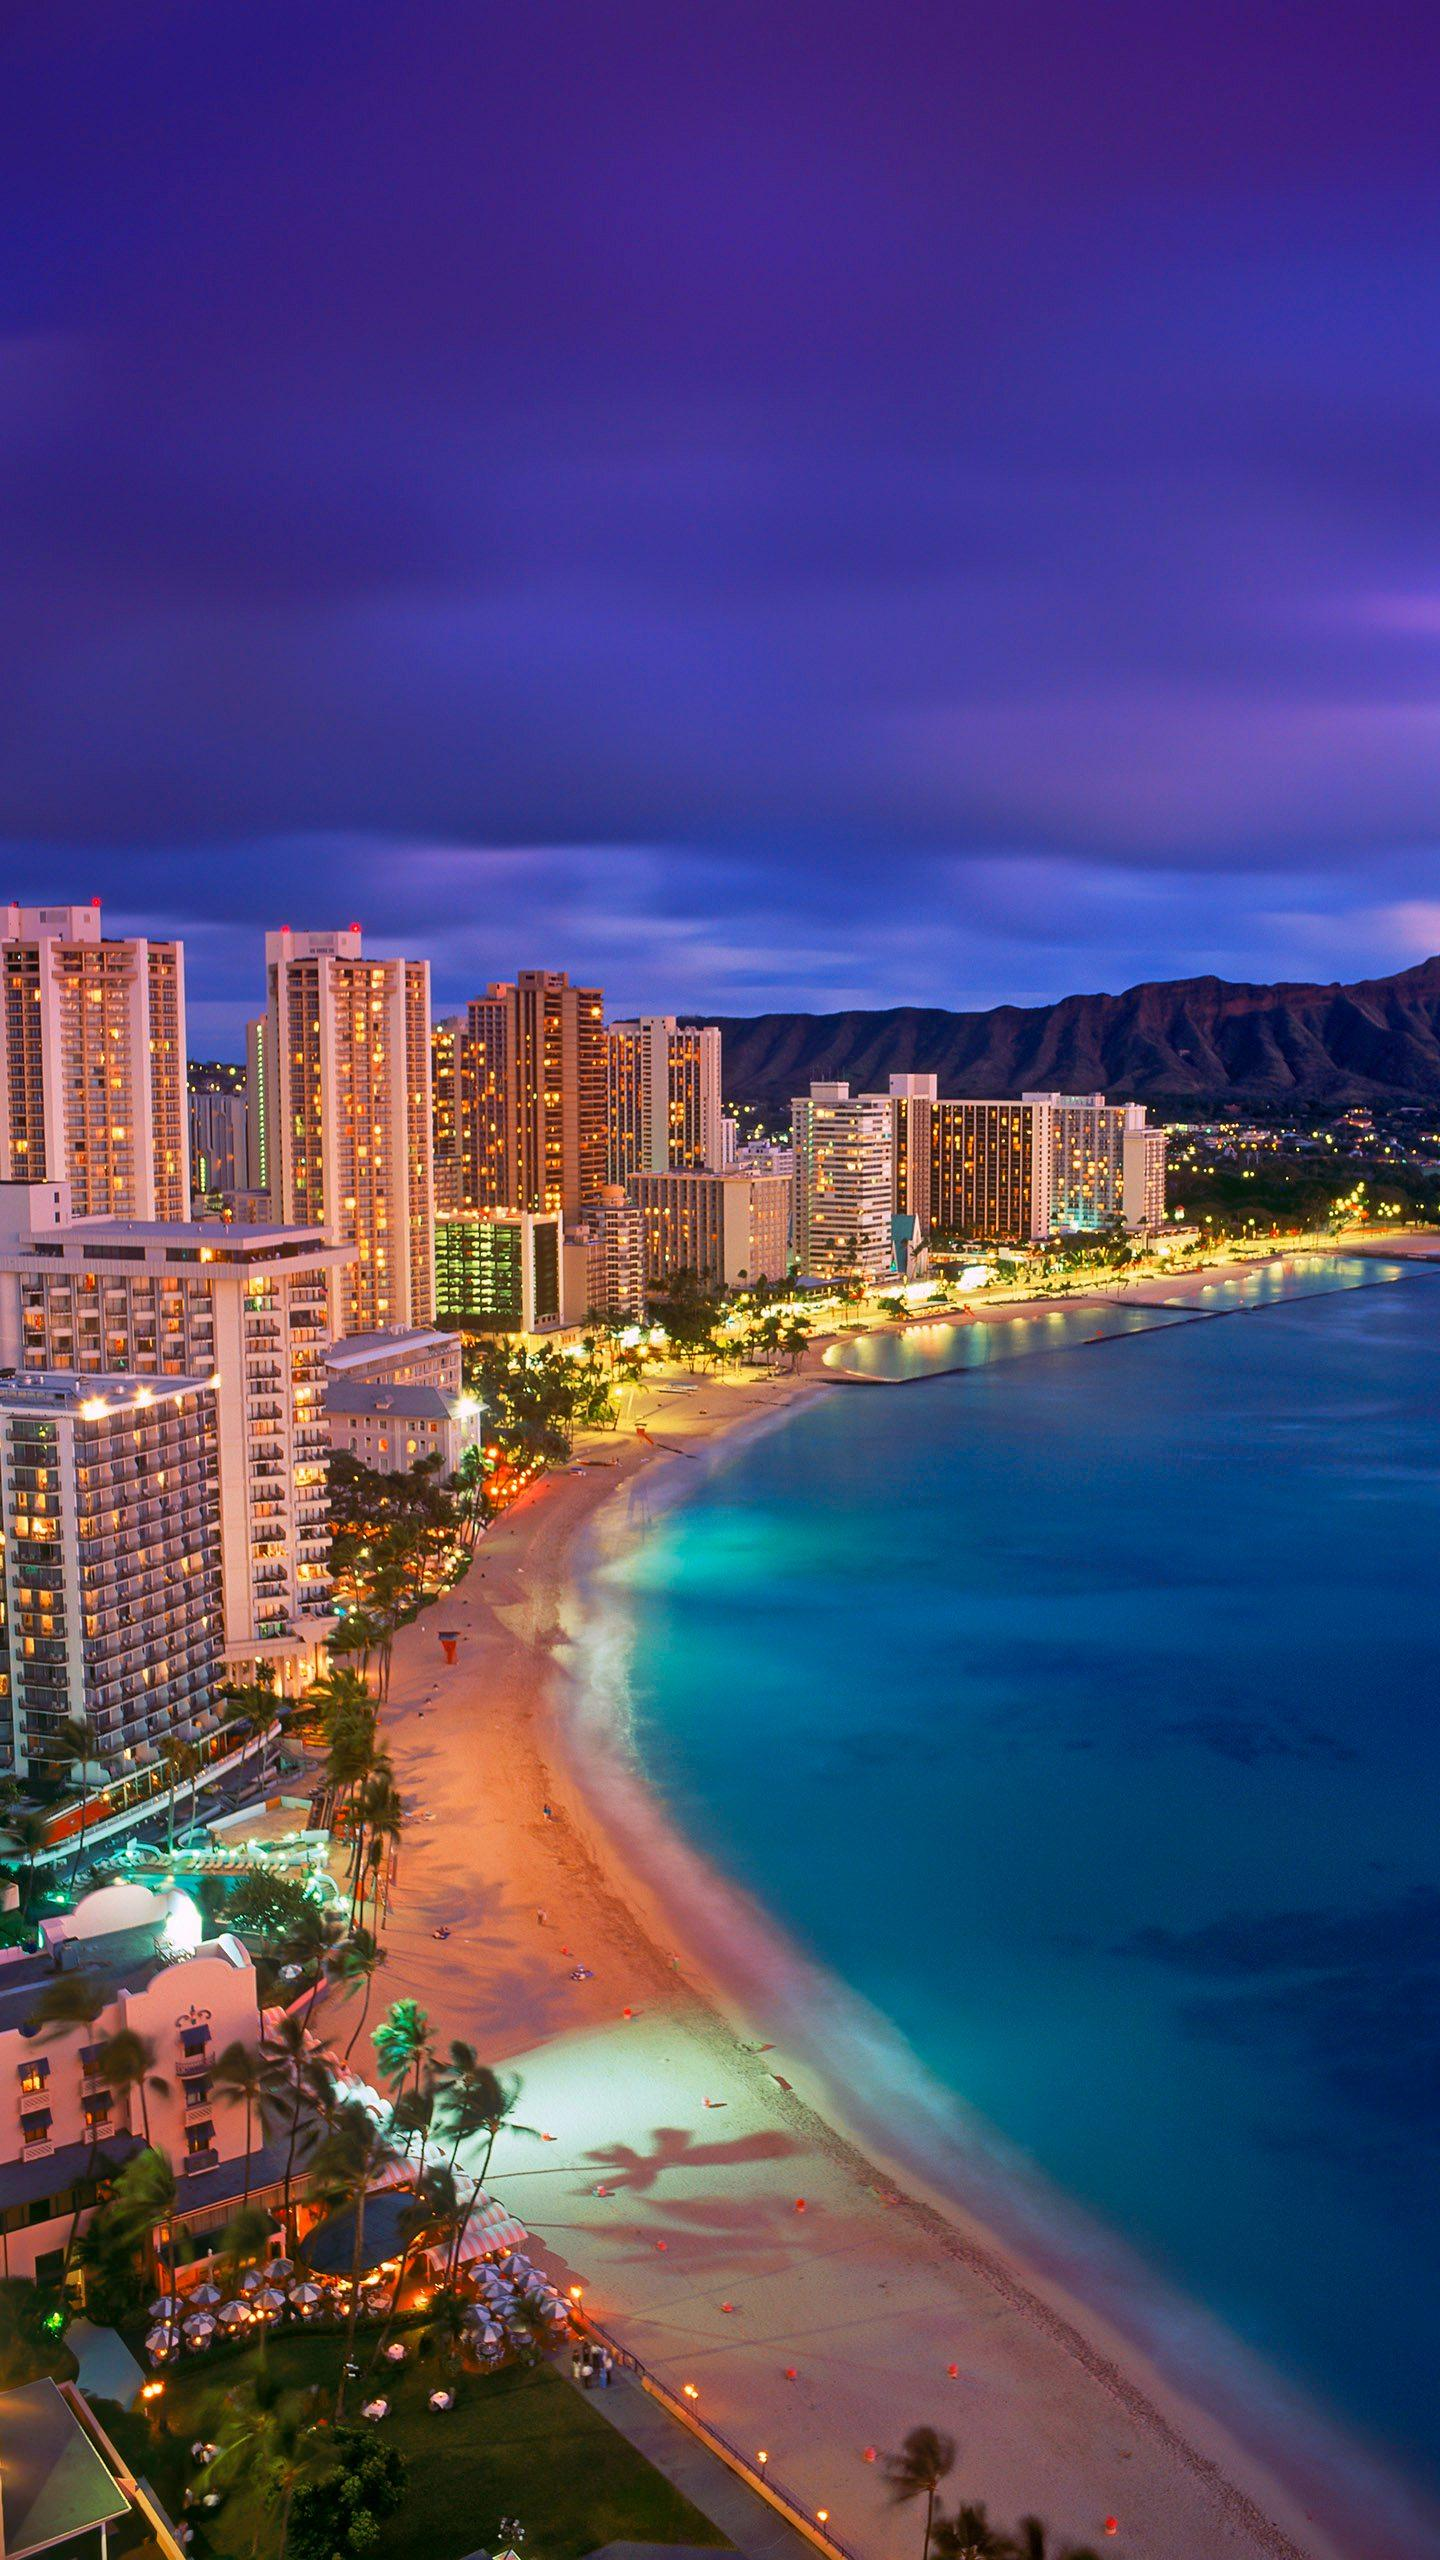 How does Hawaii play? Hawaii has a pure and splendid natural scenery, a warm climate, and a fascinating sense.